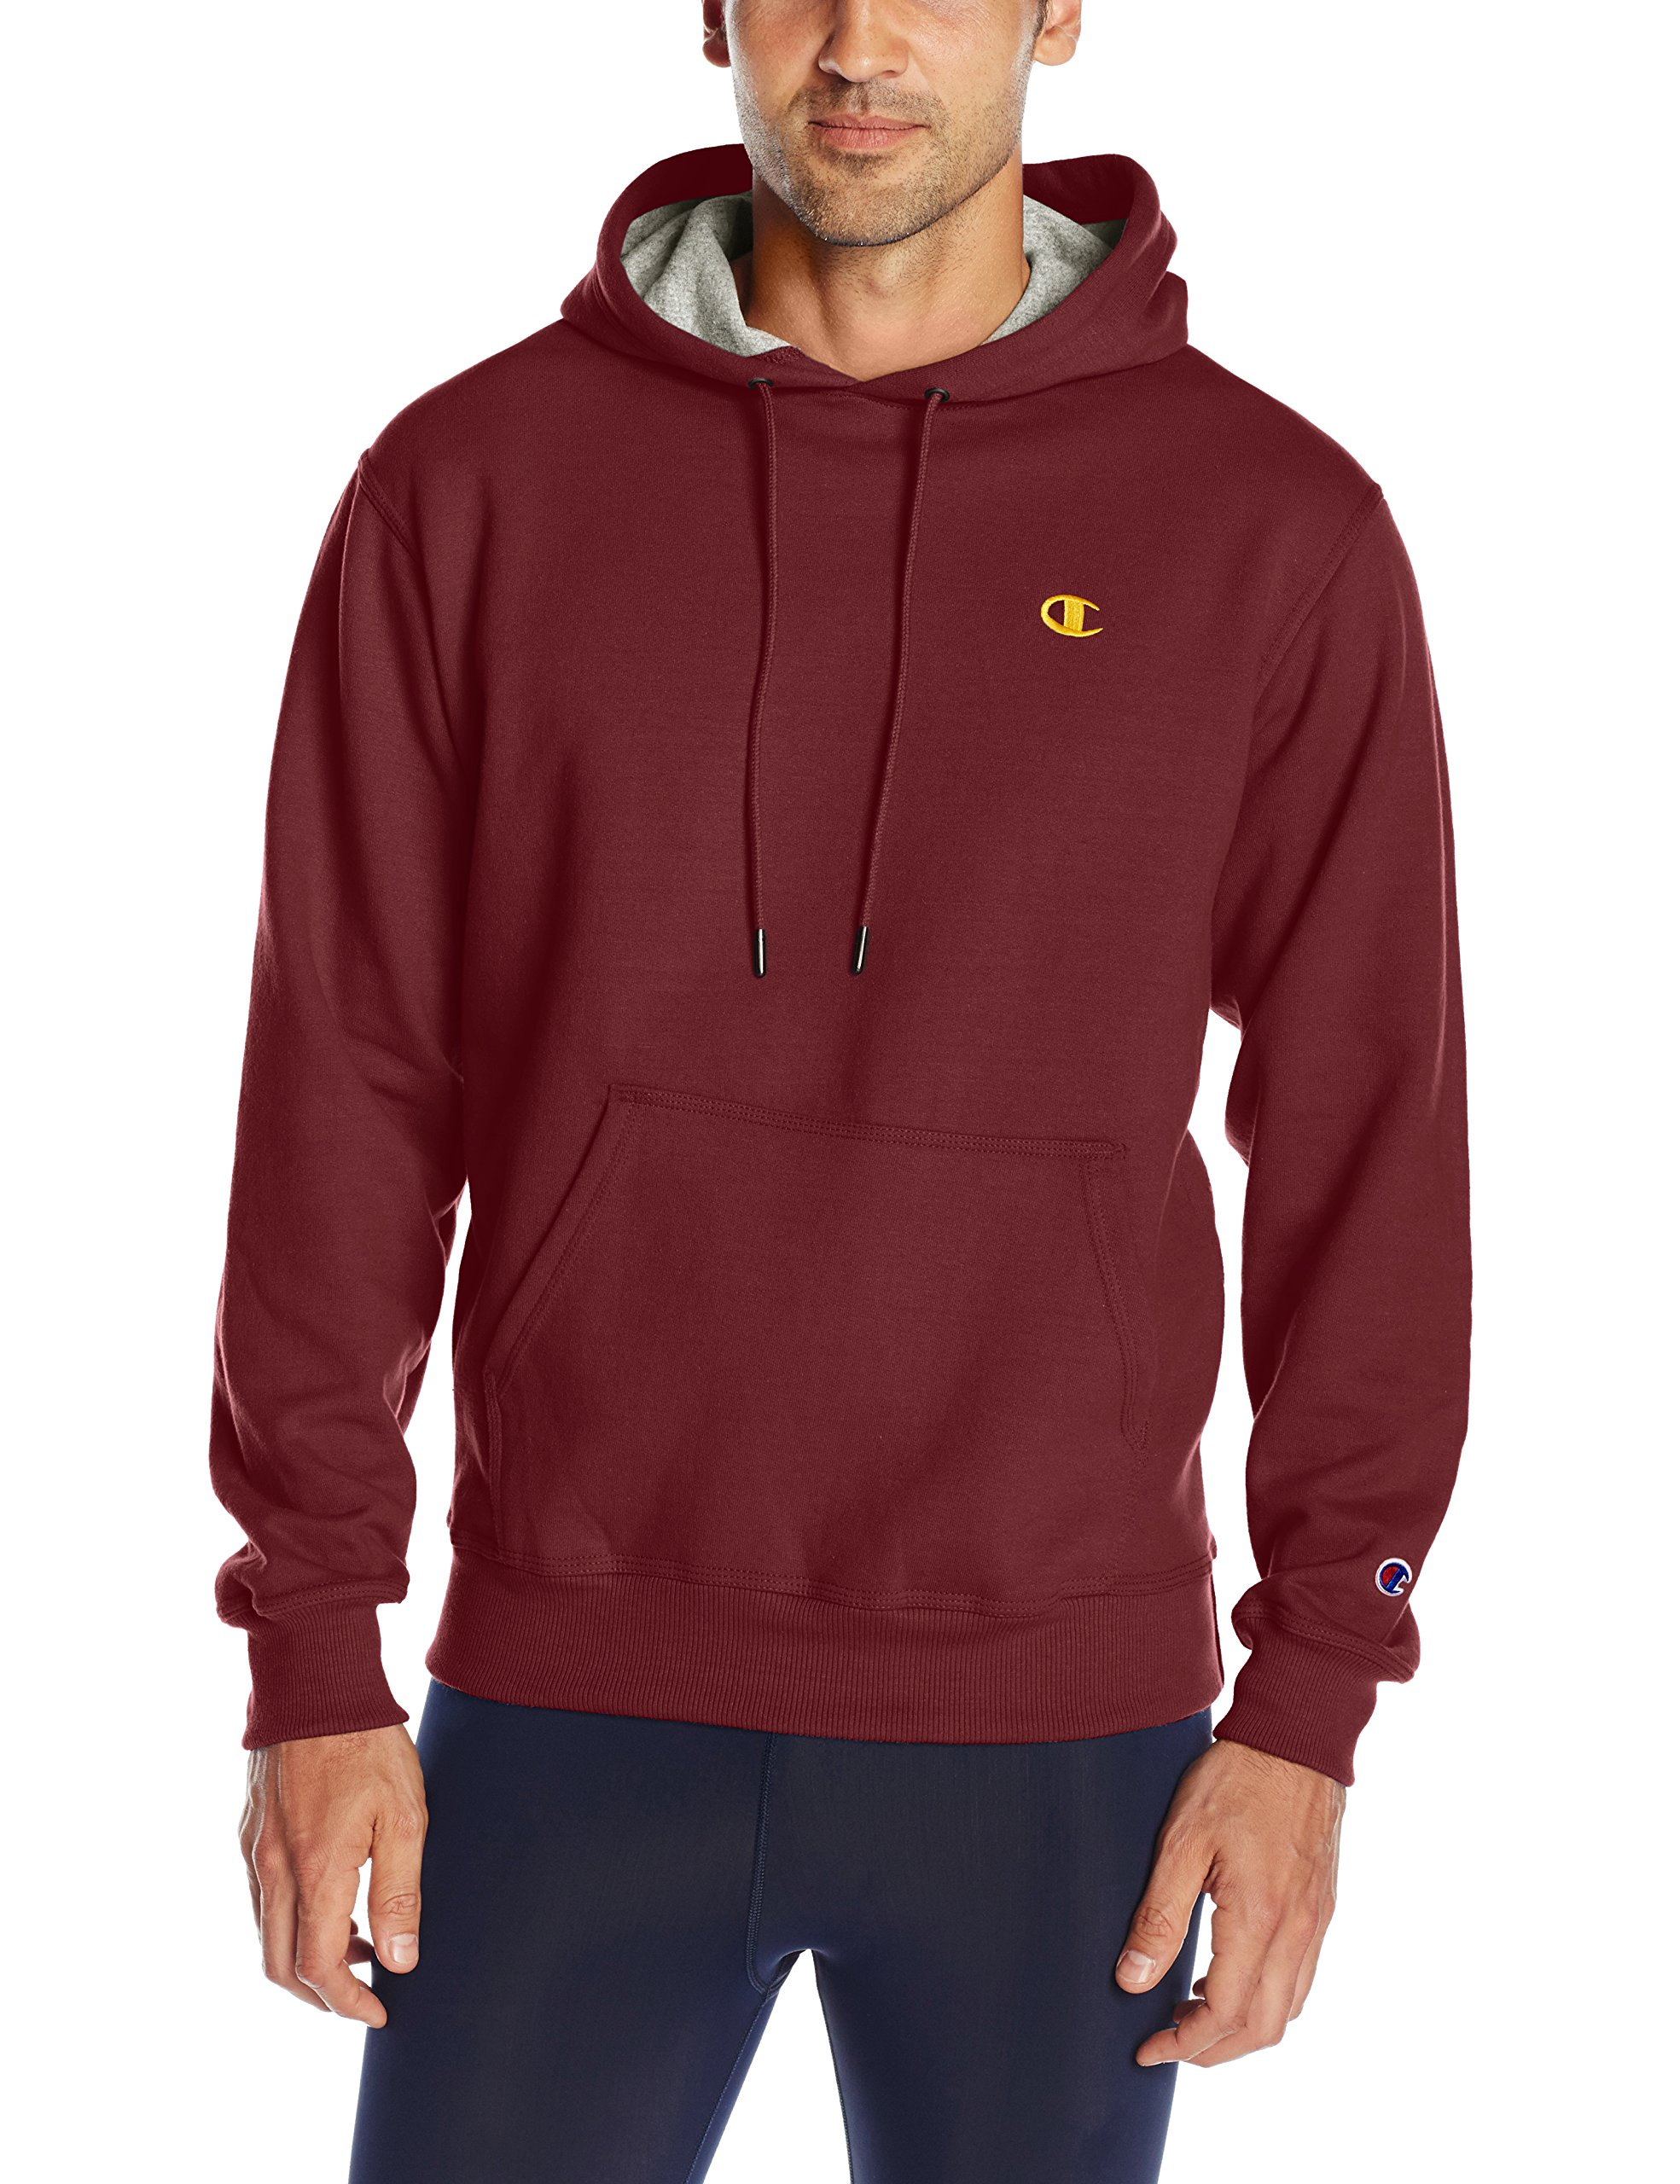 Champion Men's Powerblend Pullover Hoodie, Maroon/Team Gold Embroidered c Logo, Small